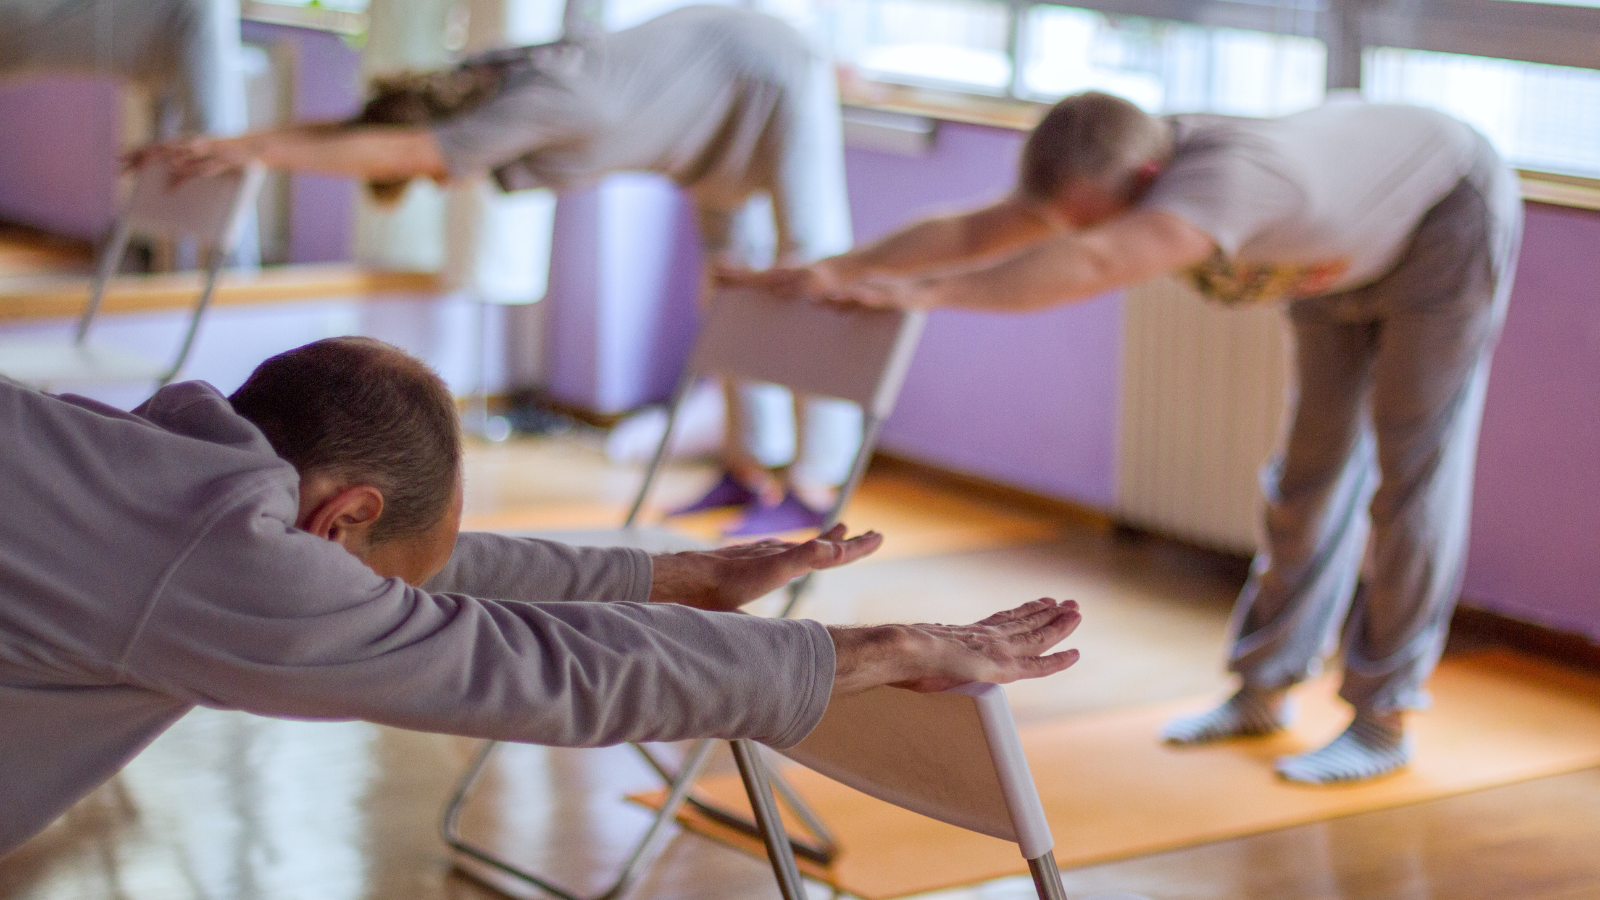 Yoga is a safe and mindful practice for people suffering with arthritis